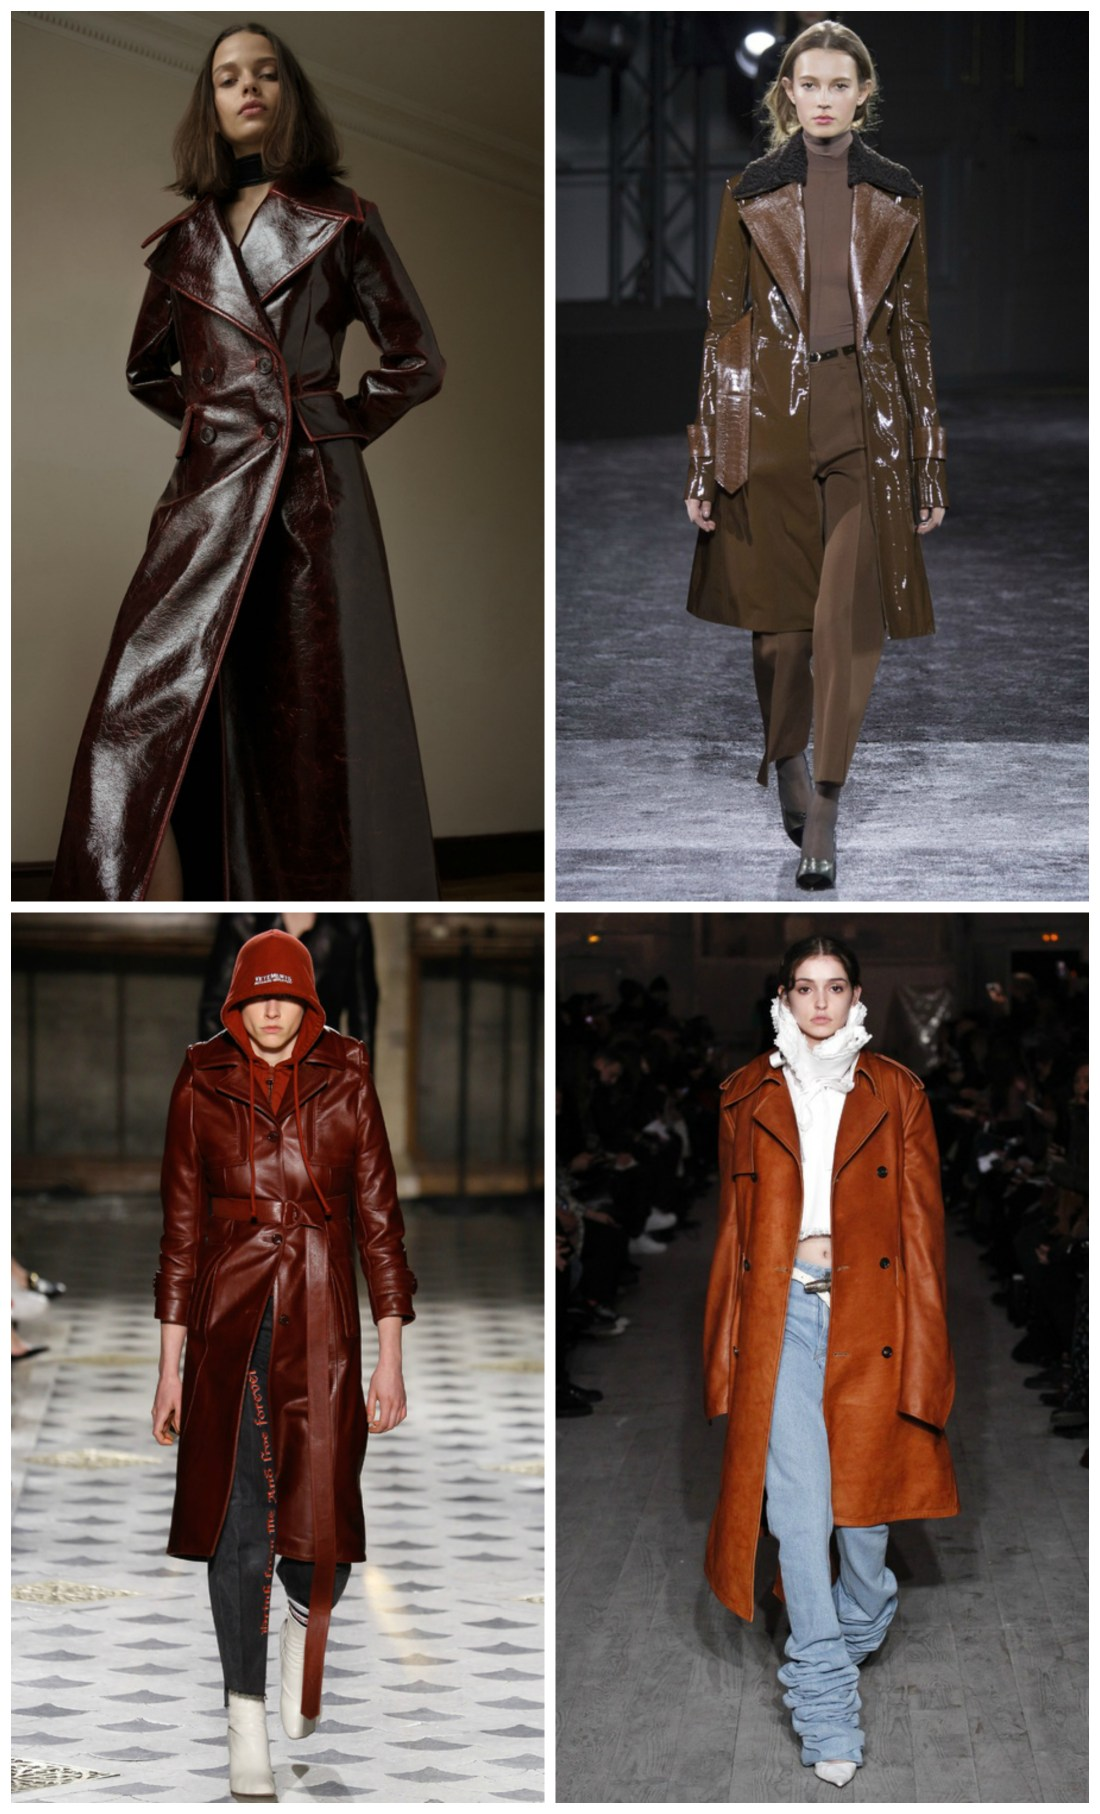 Trench coats are back in style!